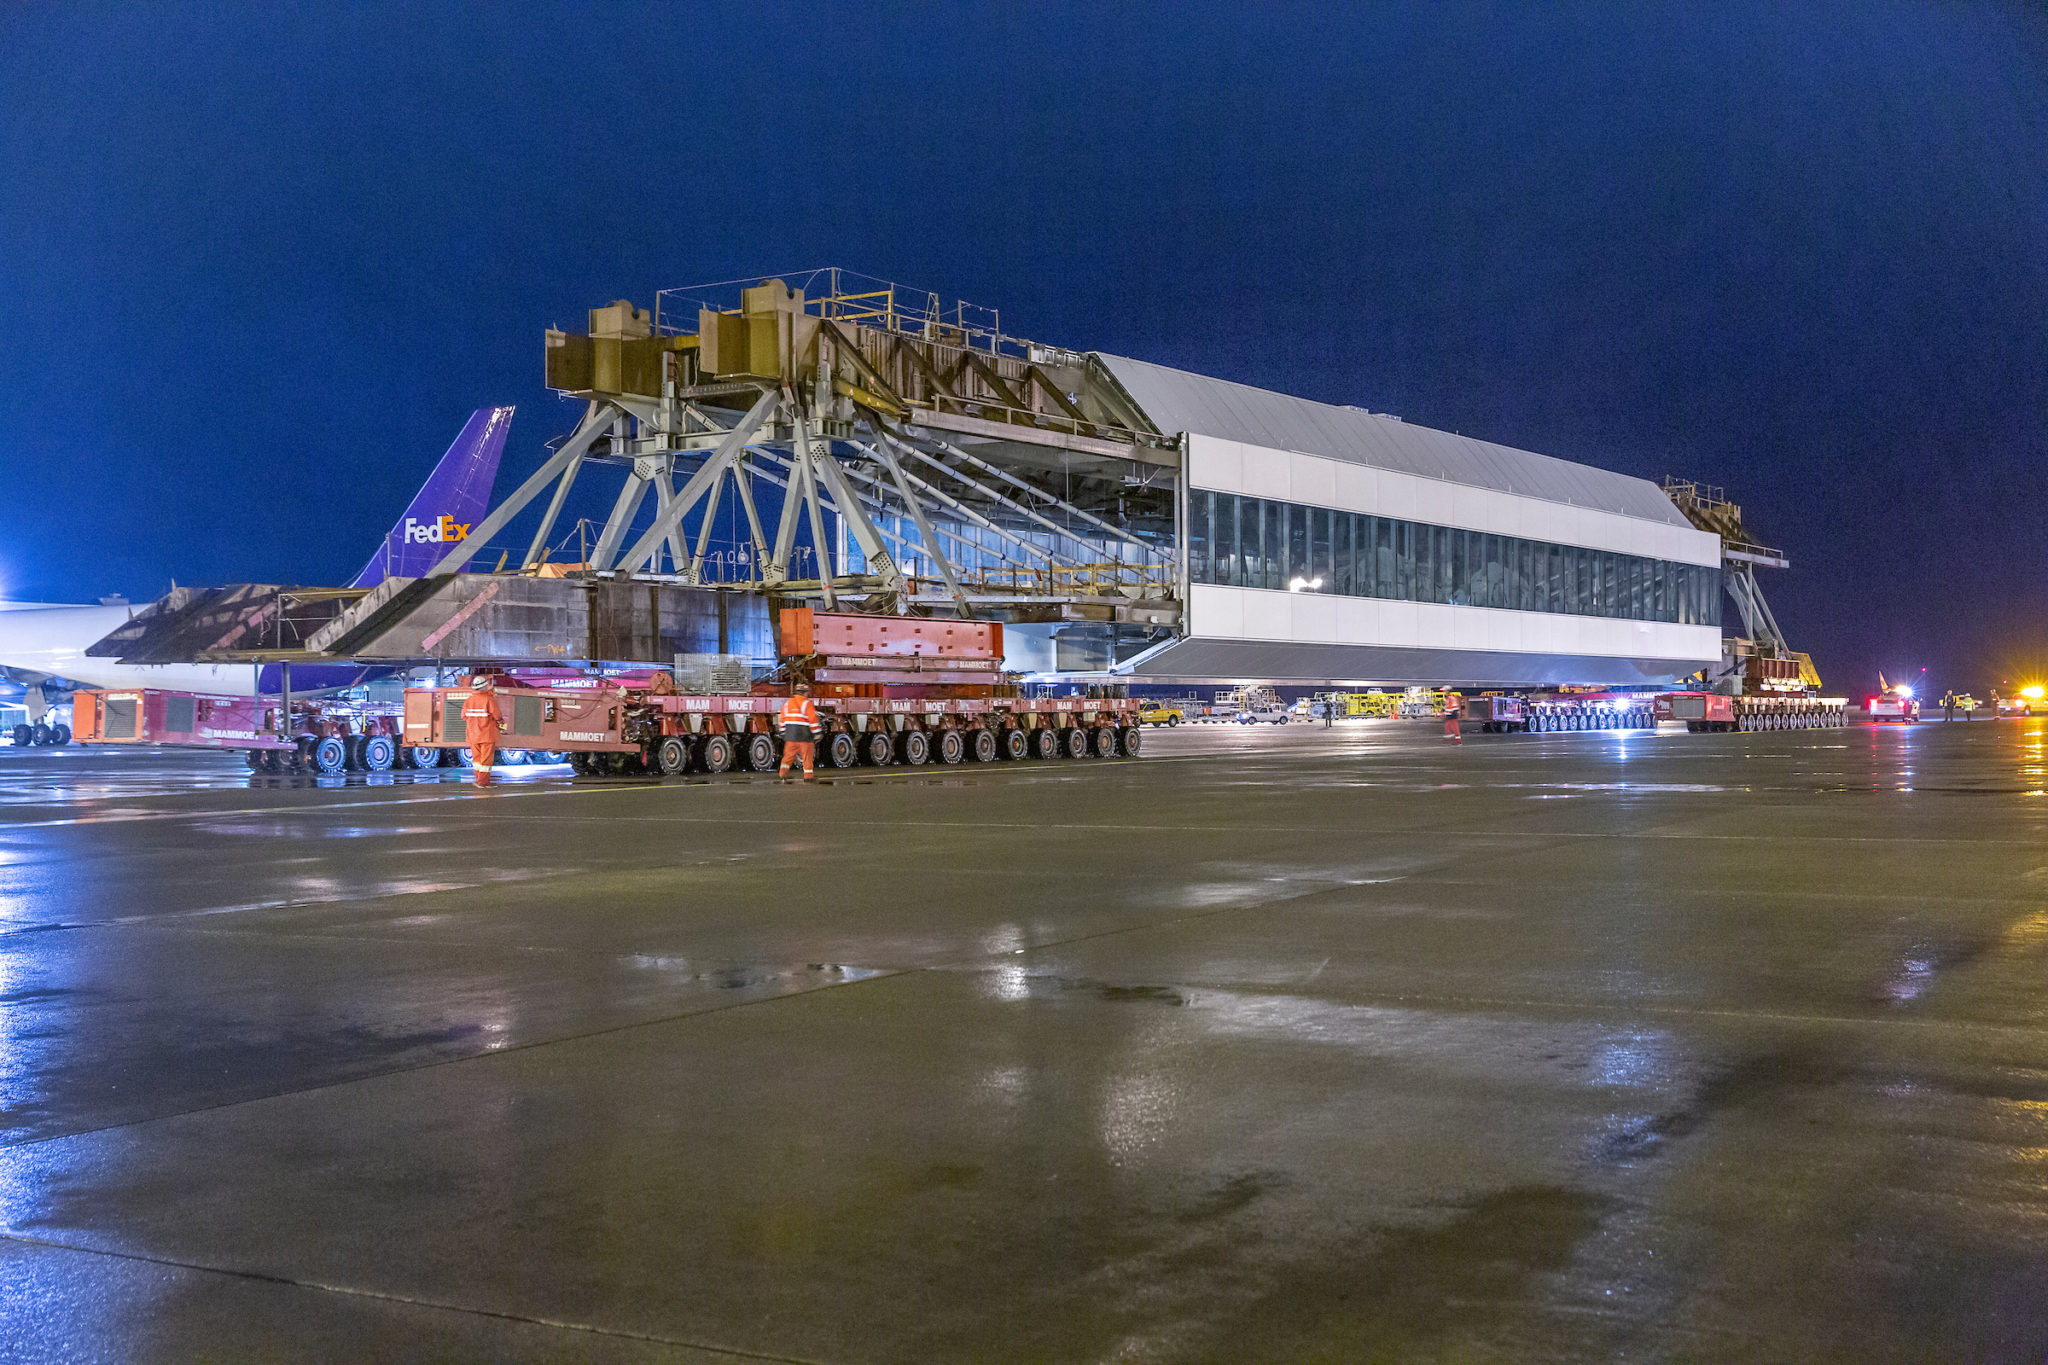 IAF pedestrian walkway moved from Cargo 2, down the center runway to the South Satellite and IAF, 24 January 2020.